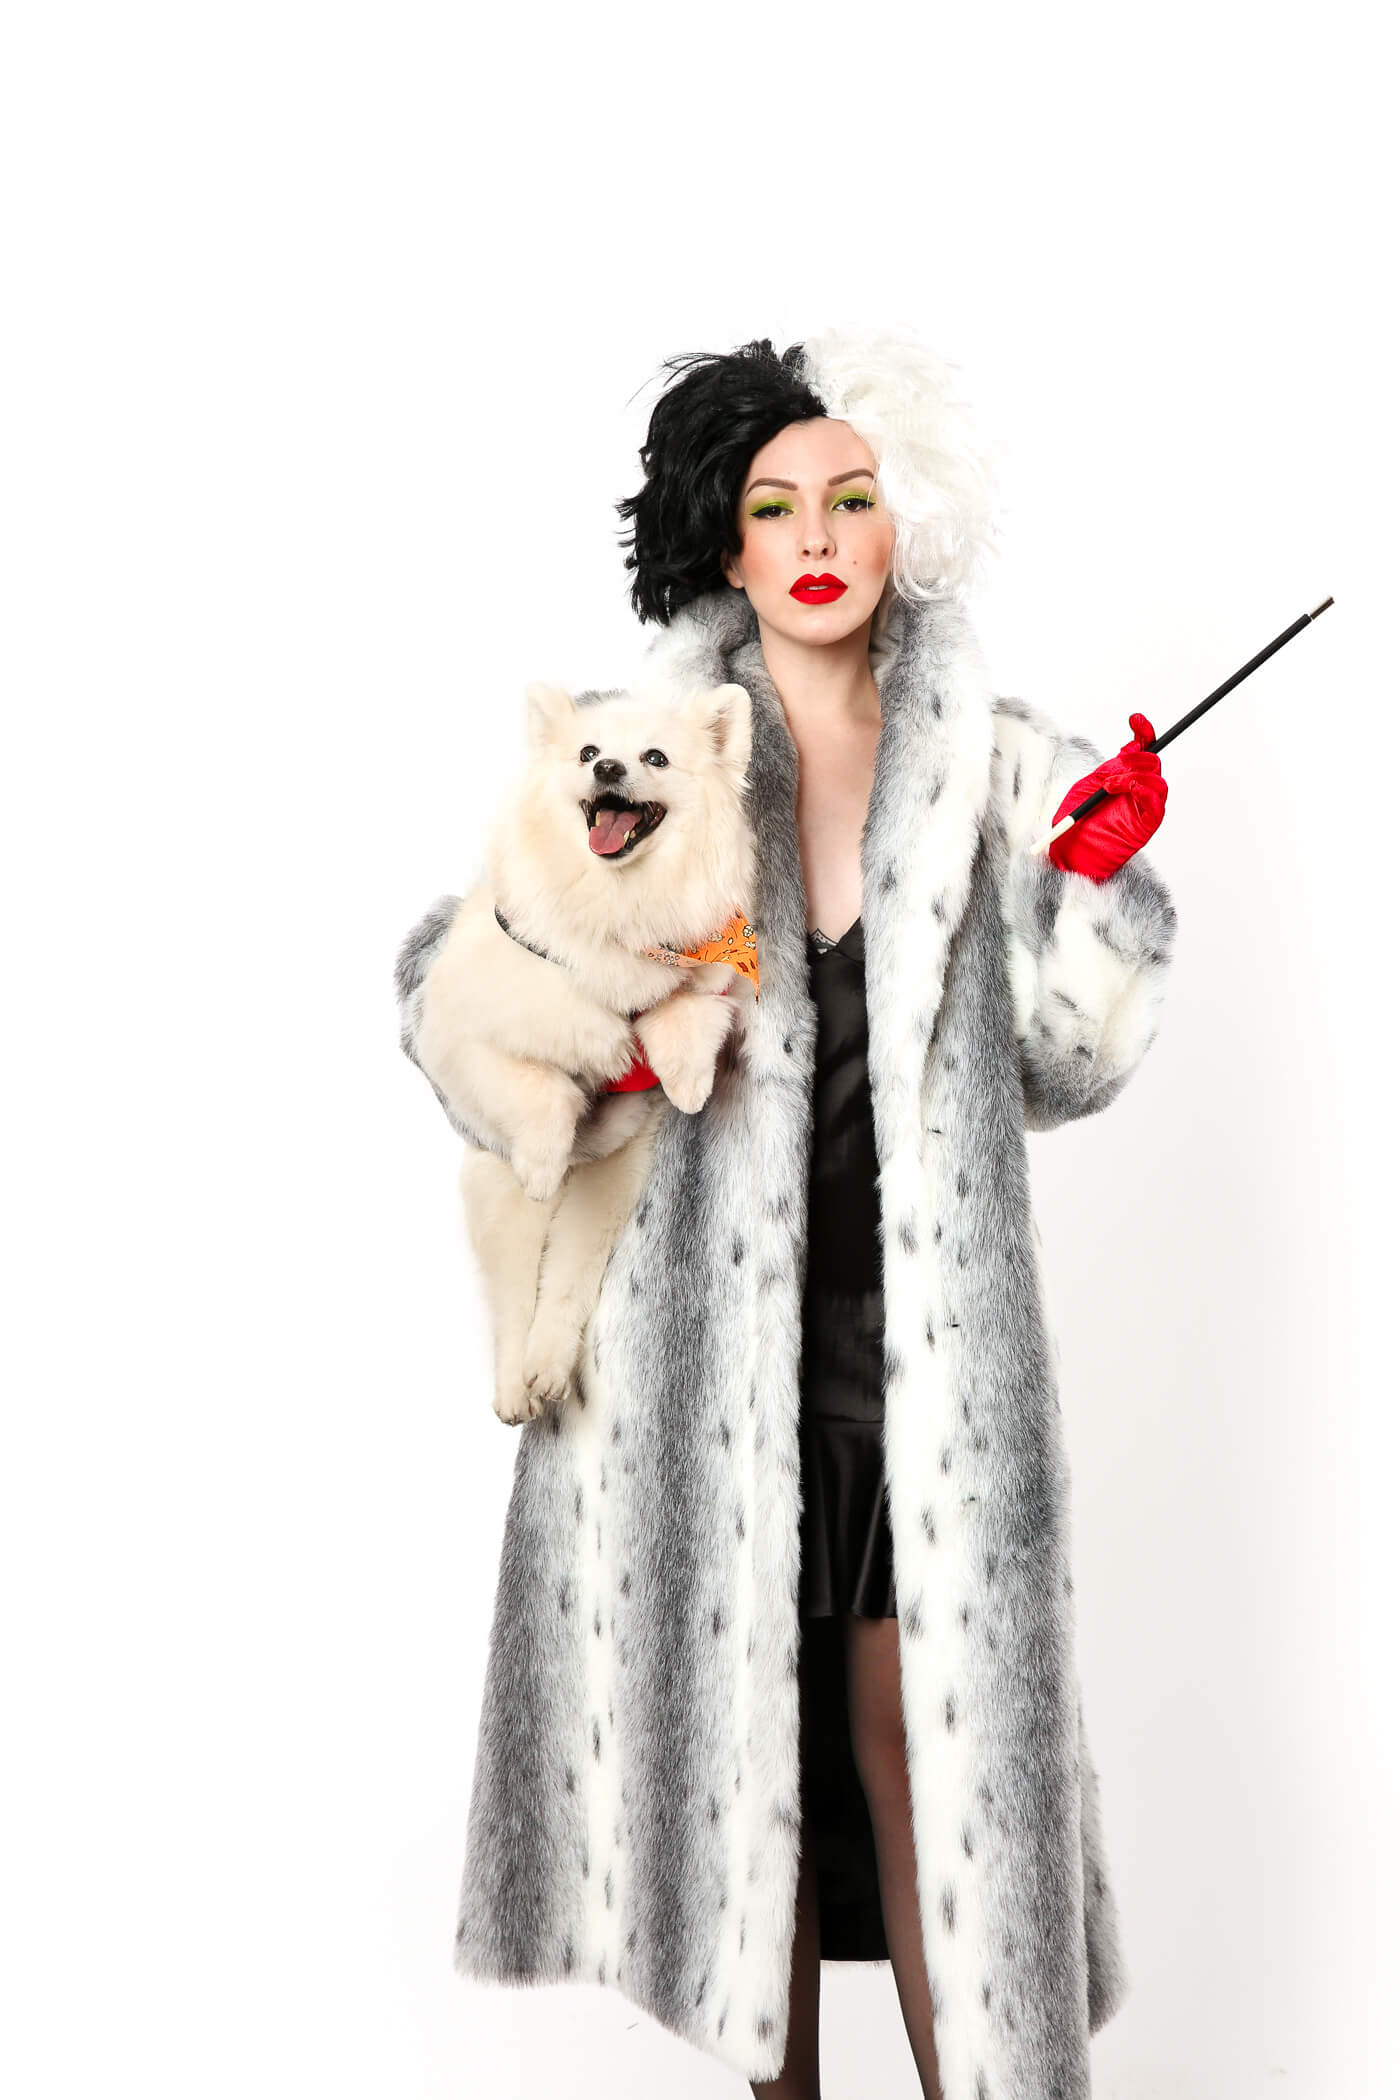 halloween costume idea cruella de vil costume from 101 dalmatians. Black Bedroom Furniture Sets. Home Design Ideas